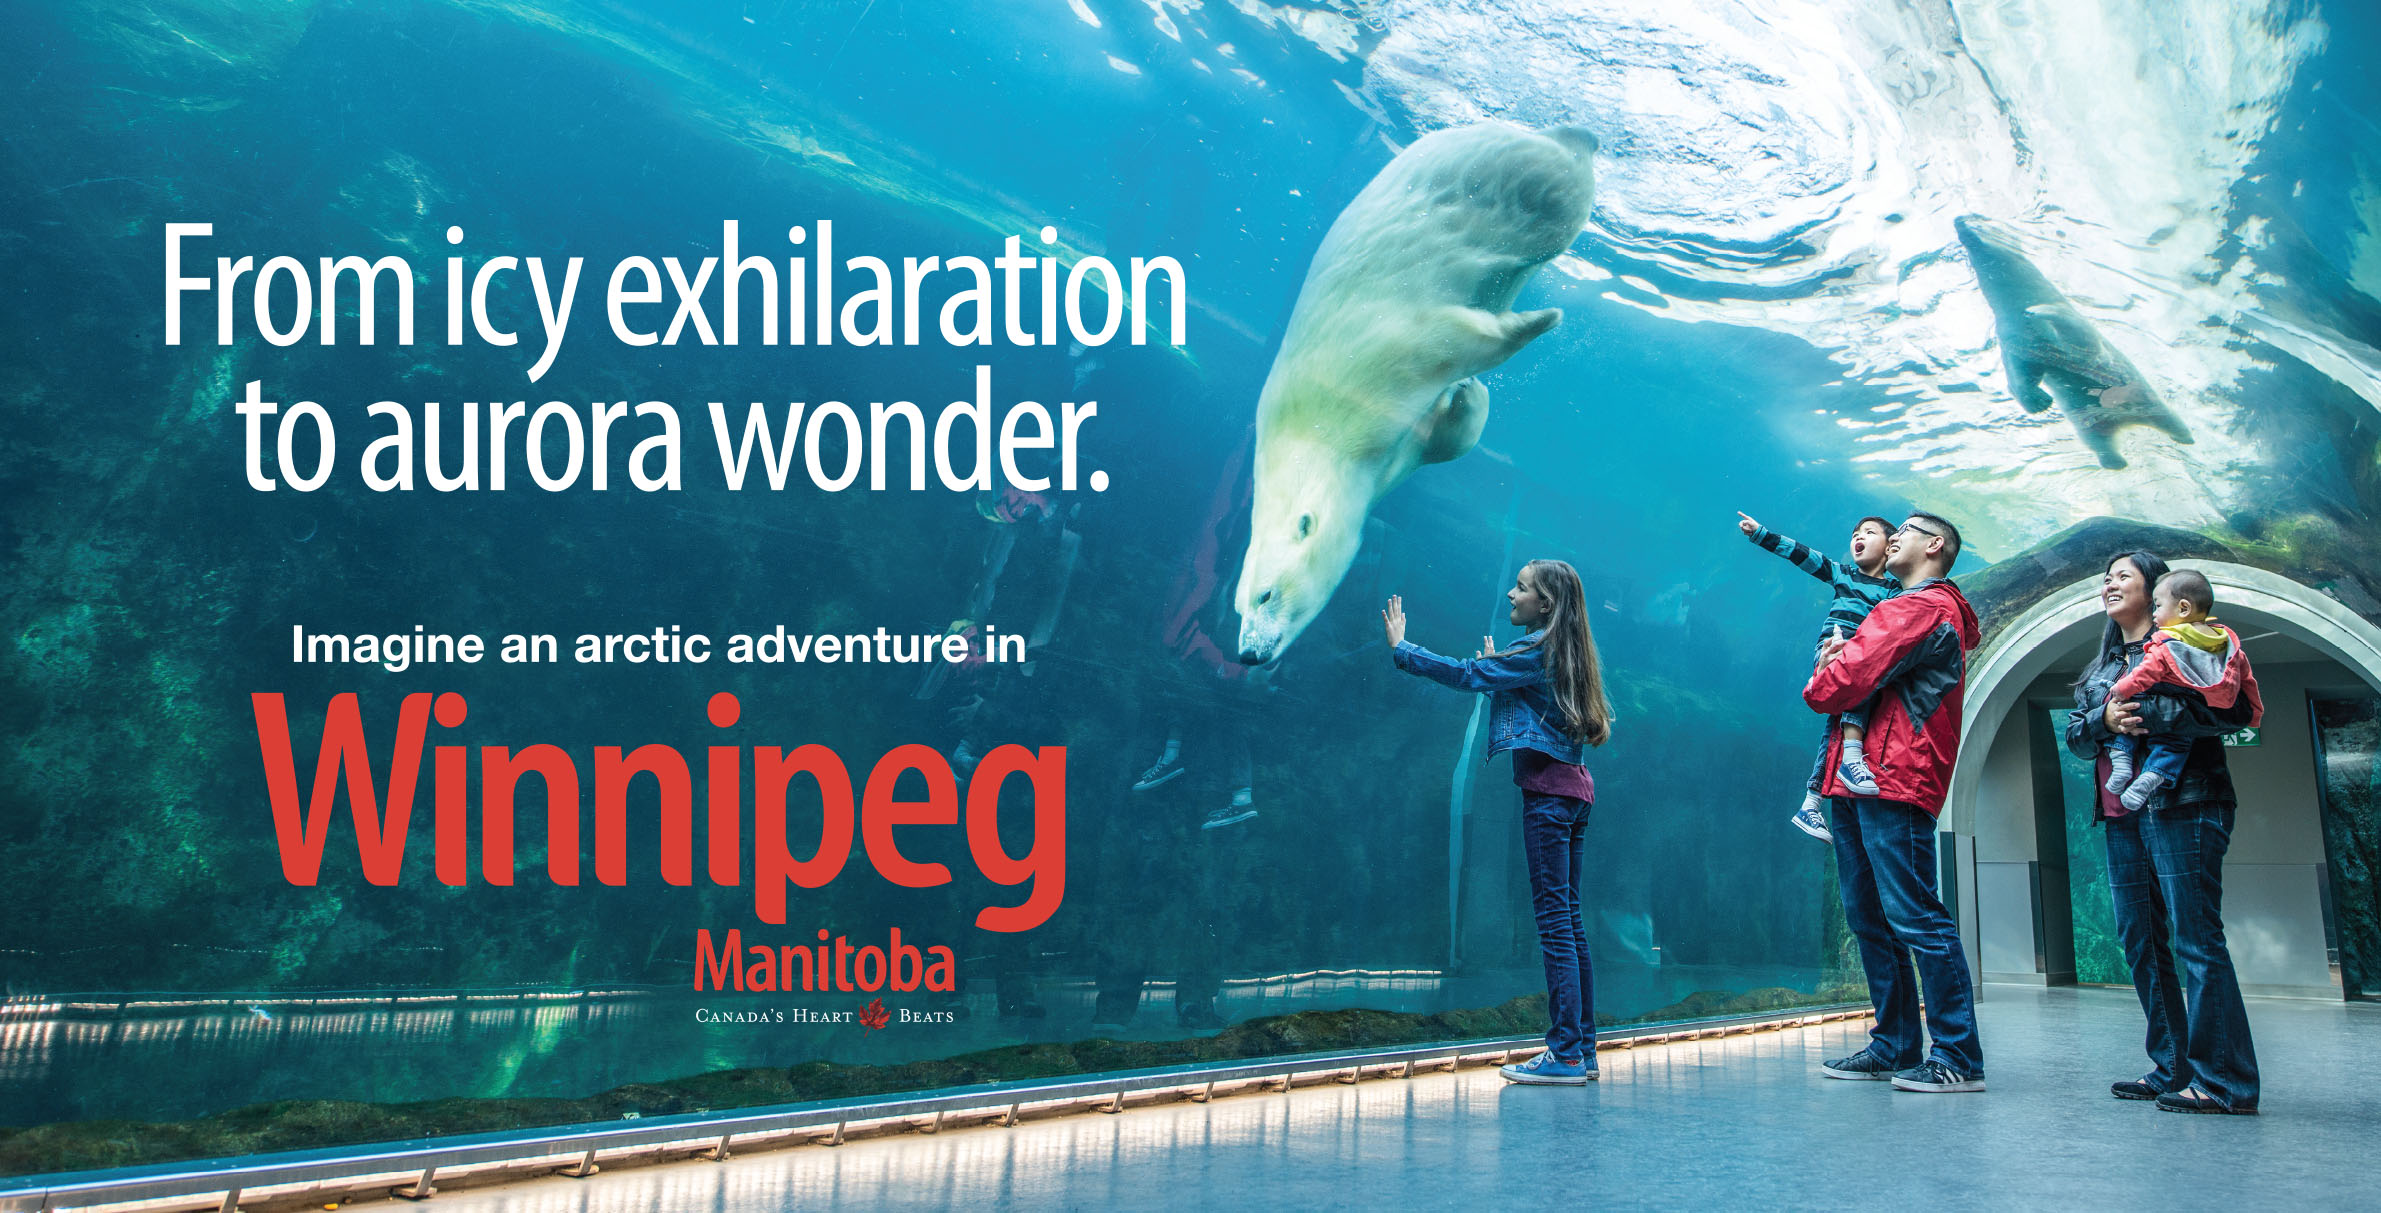 Travel Manitoba.  Photography by Thomas Fricke, Winnipeg commercial photographer.  Concept by McKim.